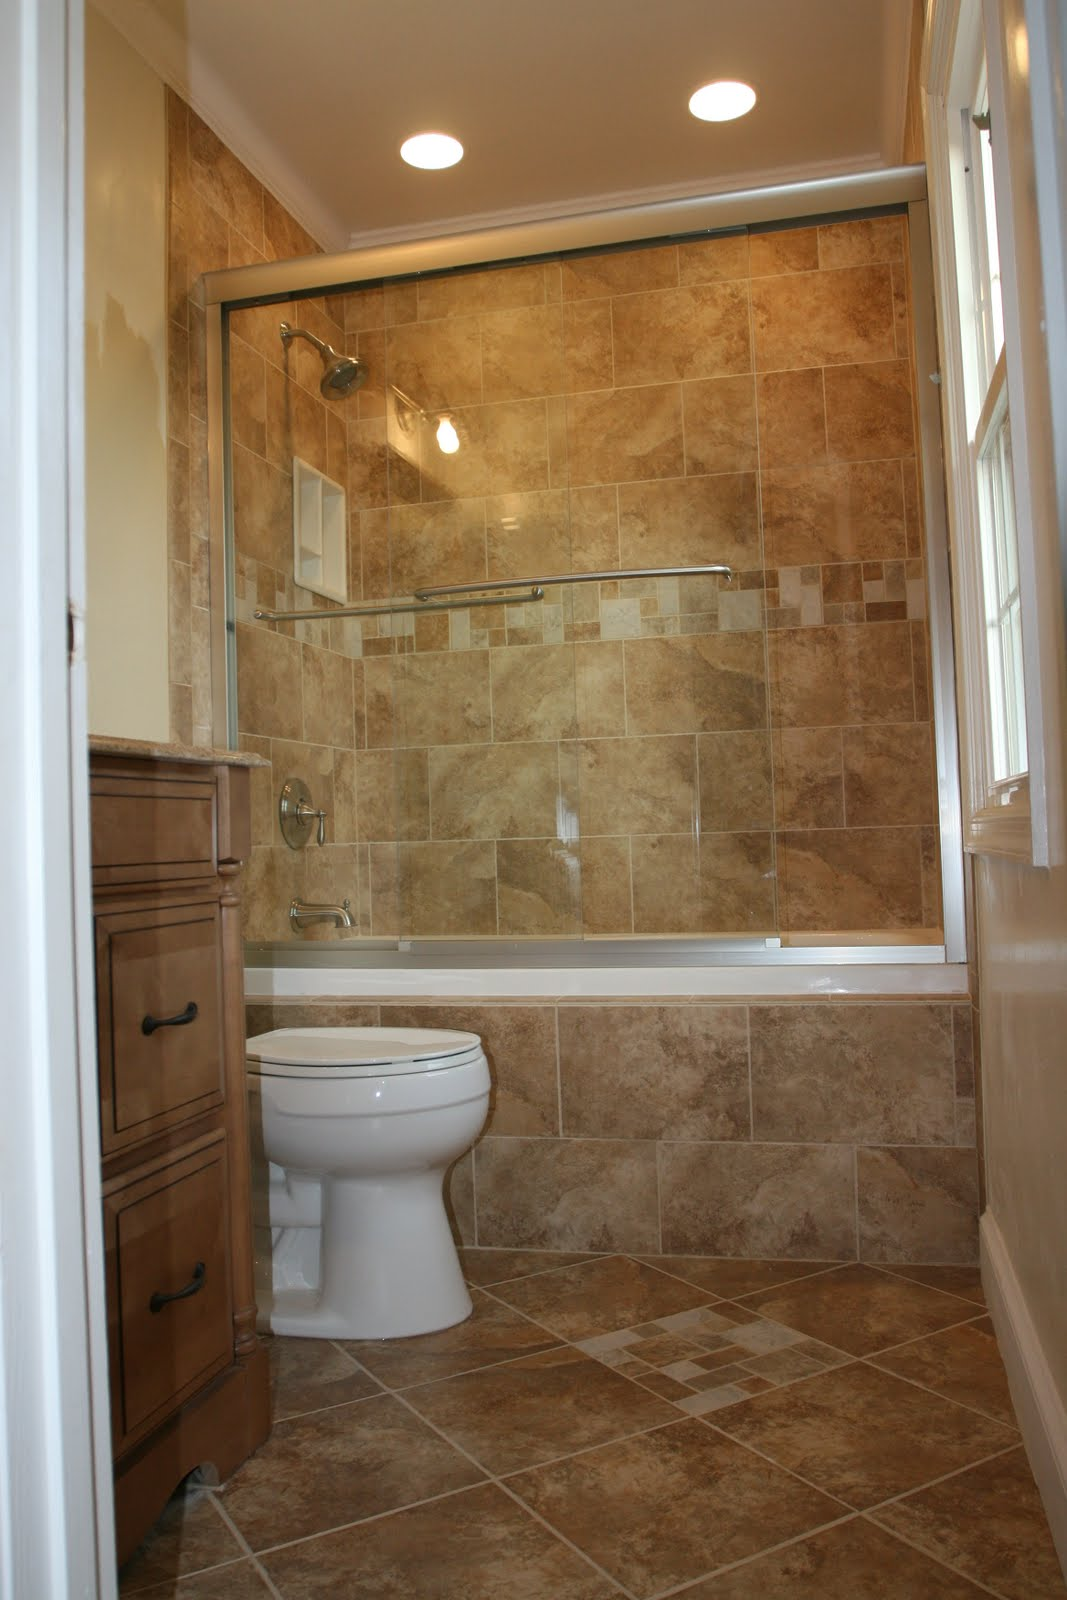 Pleasing Bathroom Design With Granite Wall and Floor Tile Decor